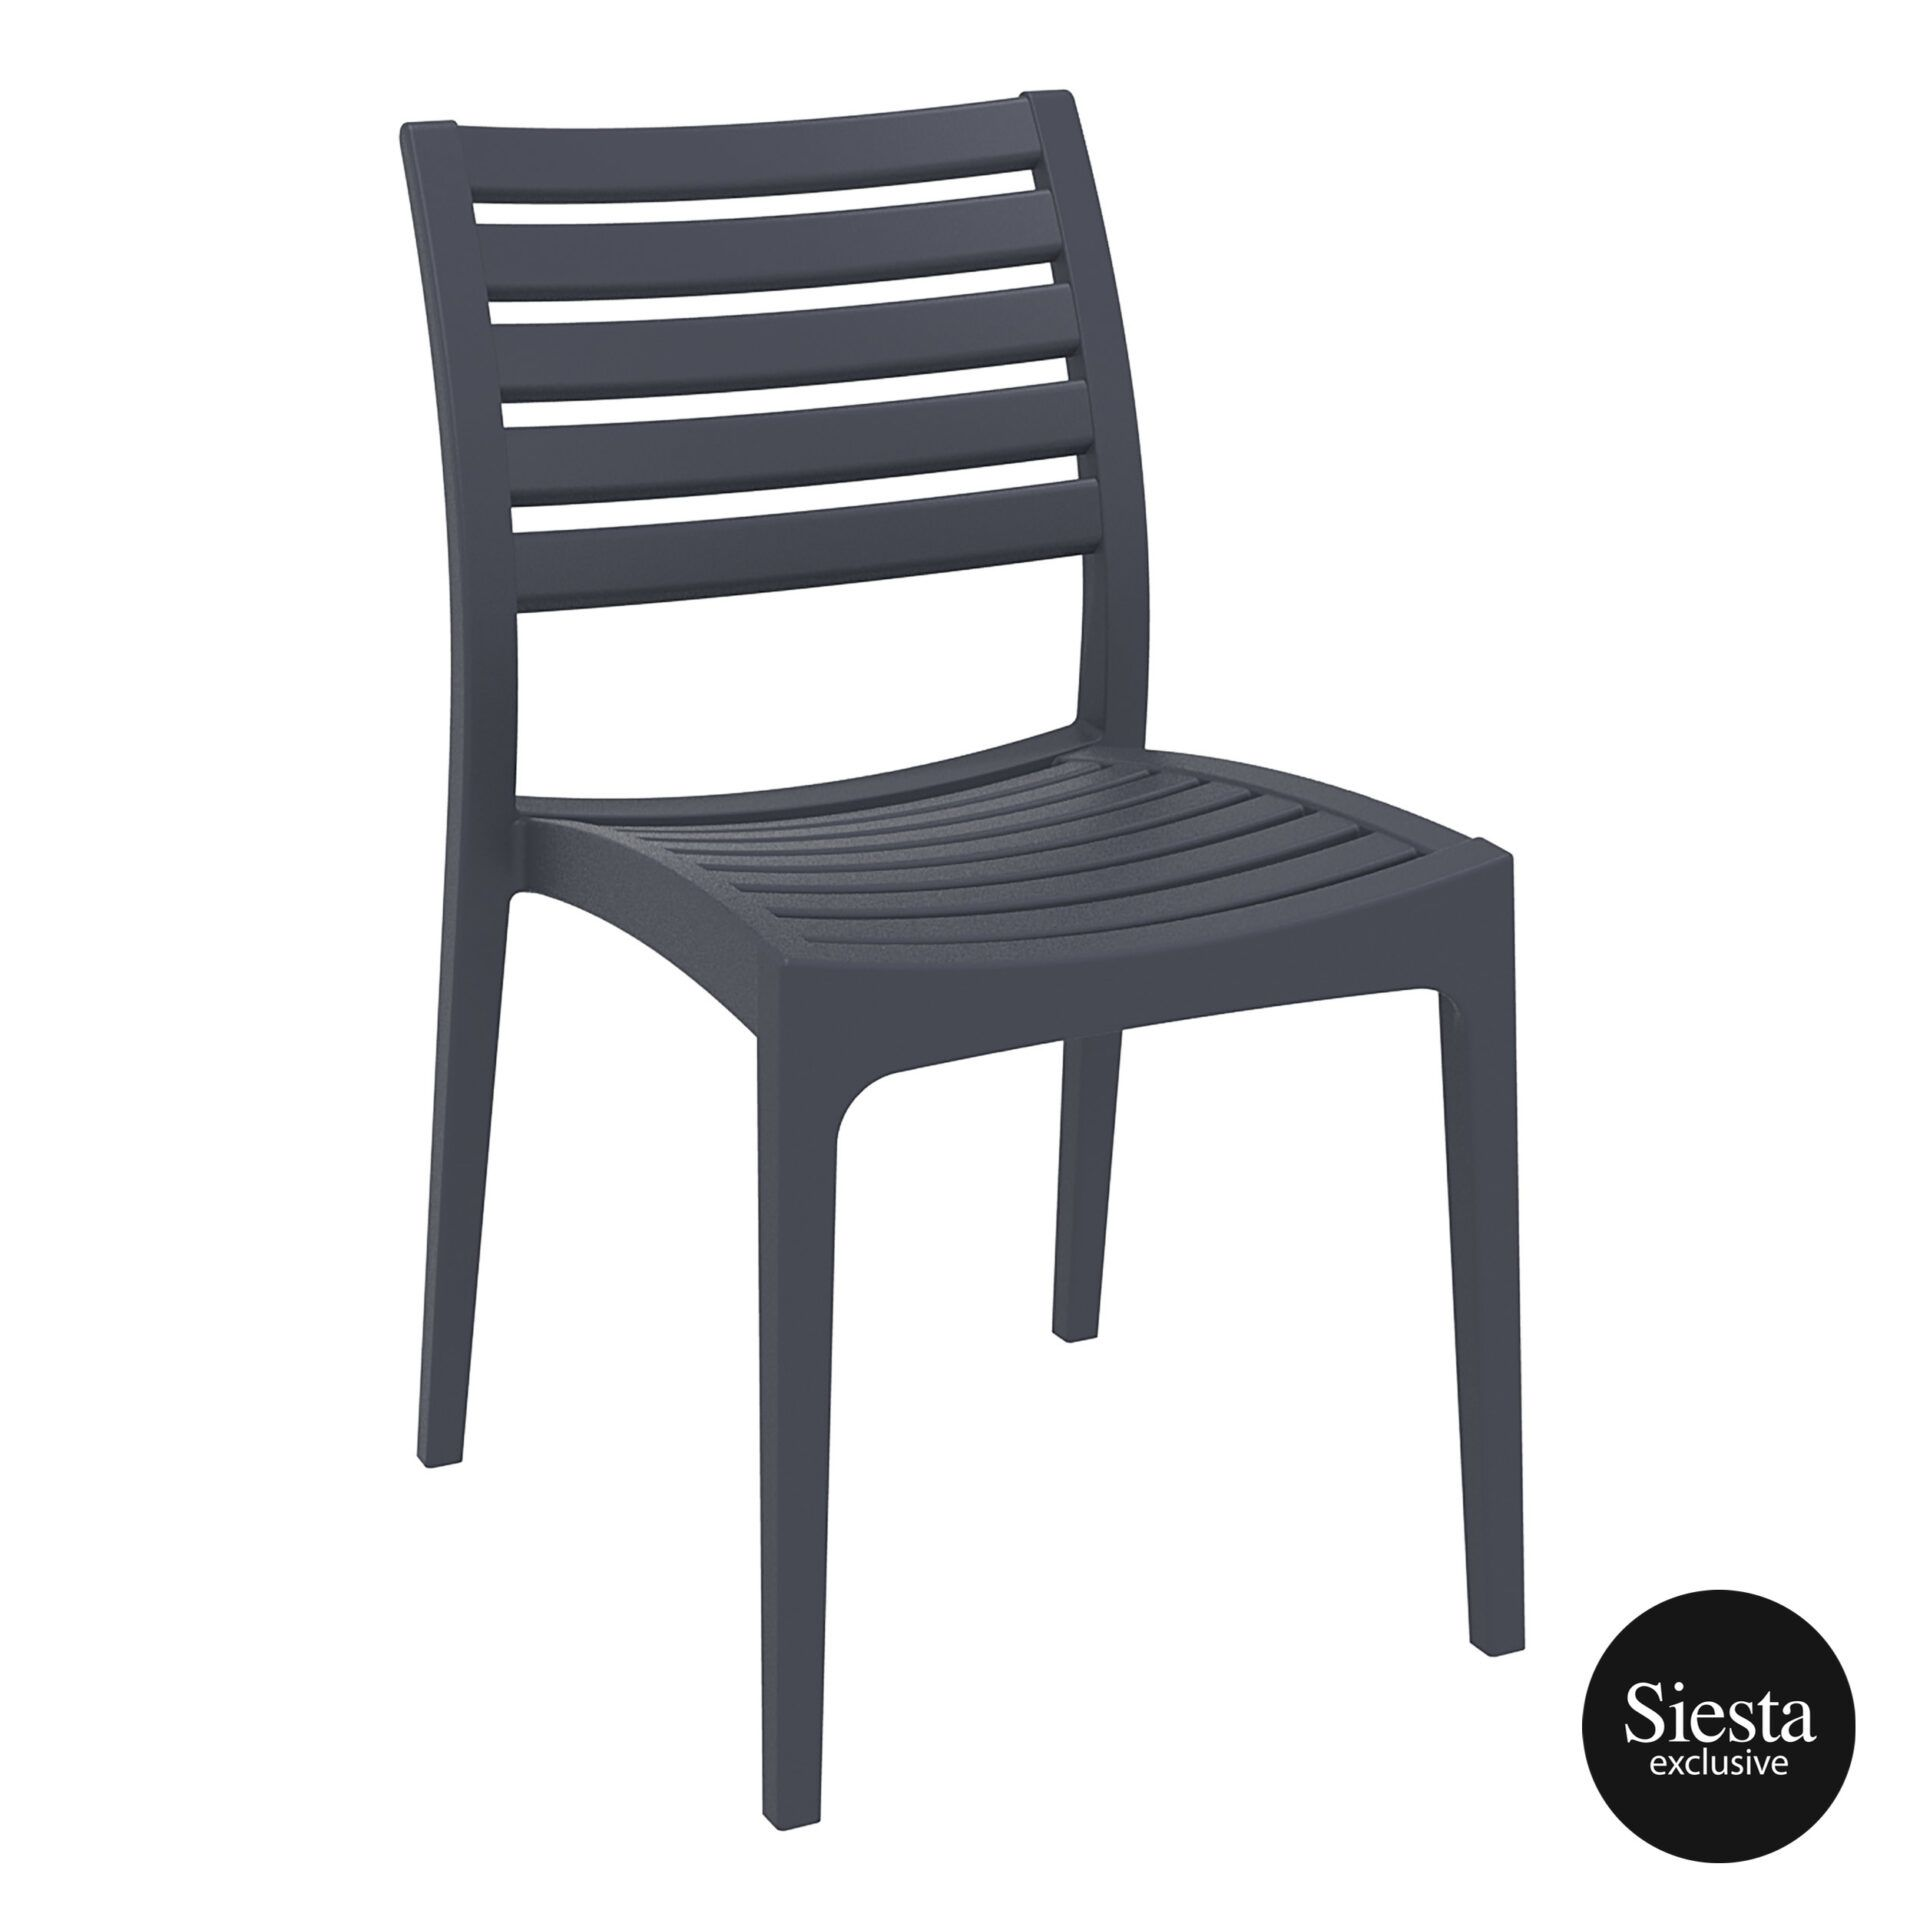 outdoor ares chair darkgrey front side 1